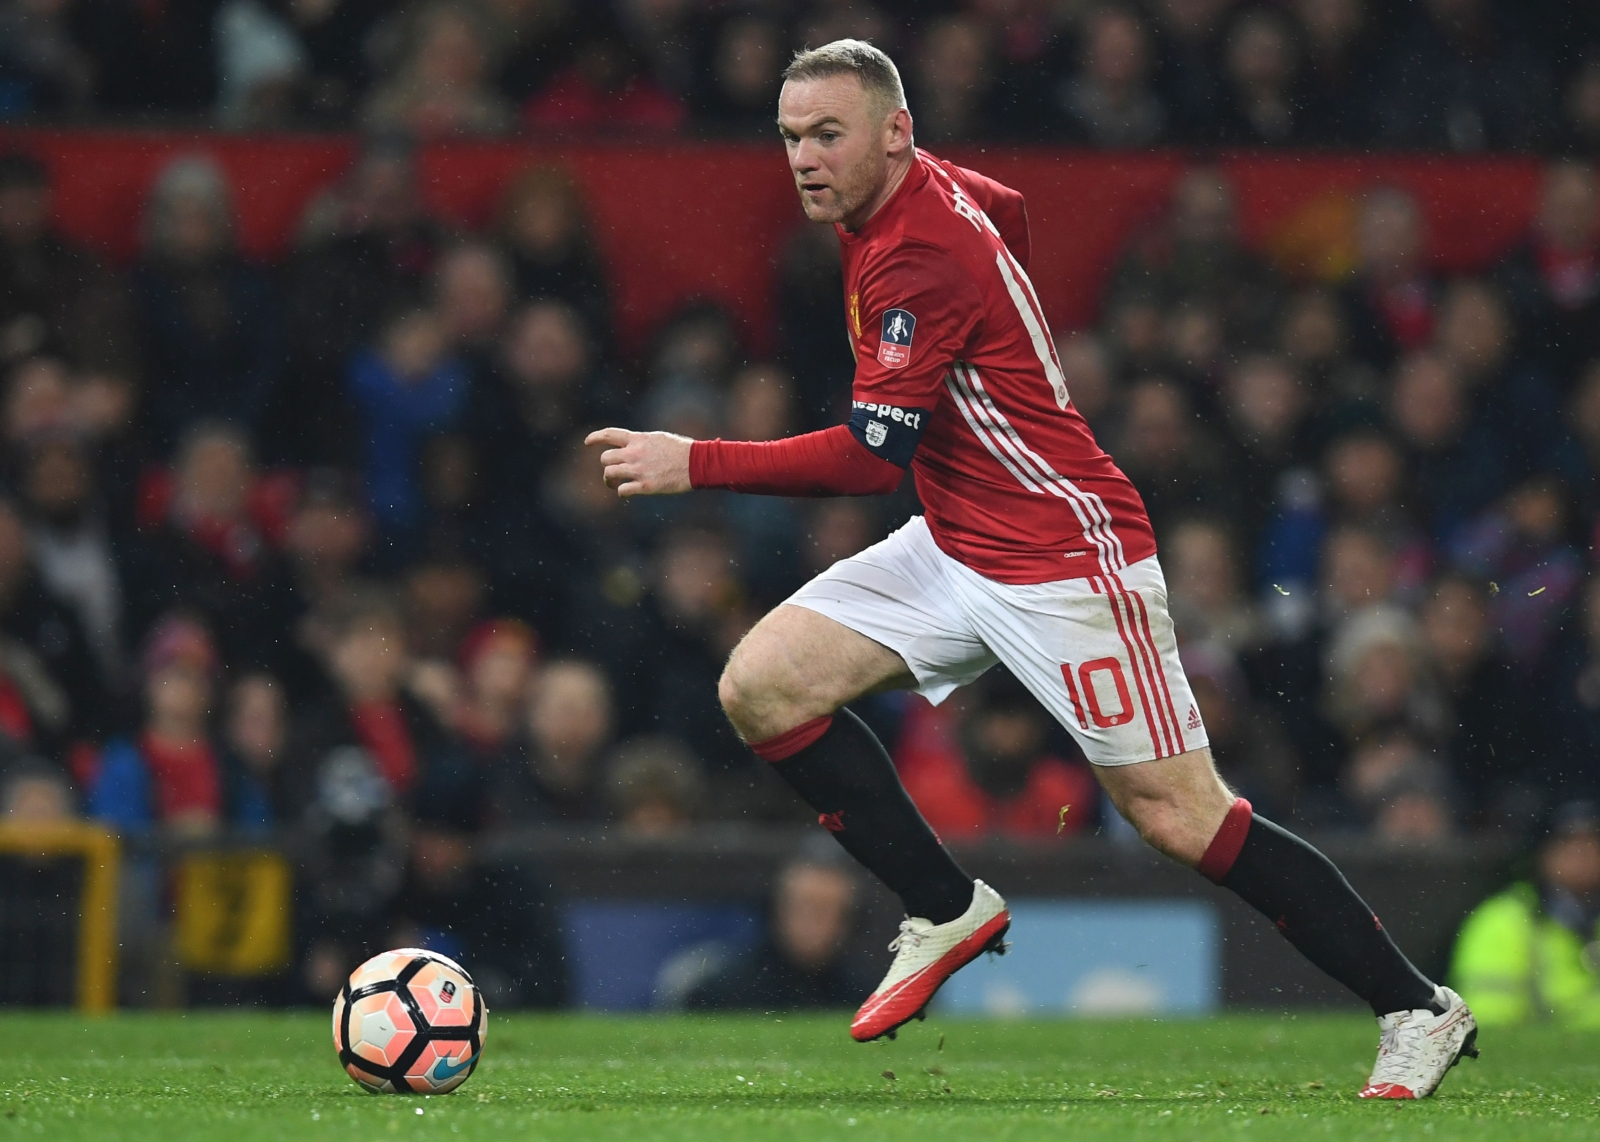 Out of favour Manchester United striker Wayne Rooney open to